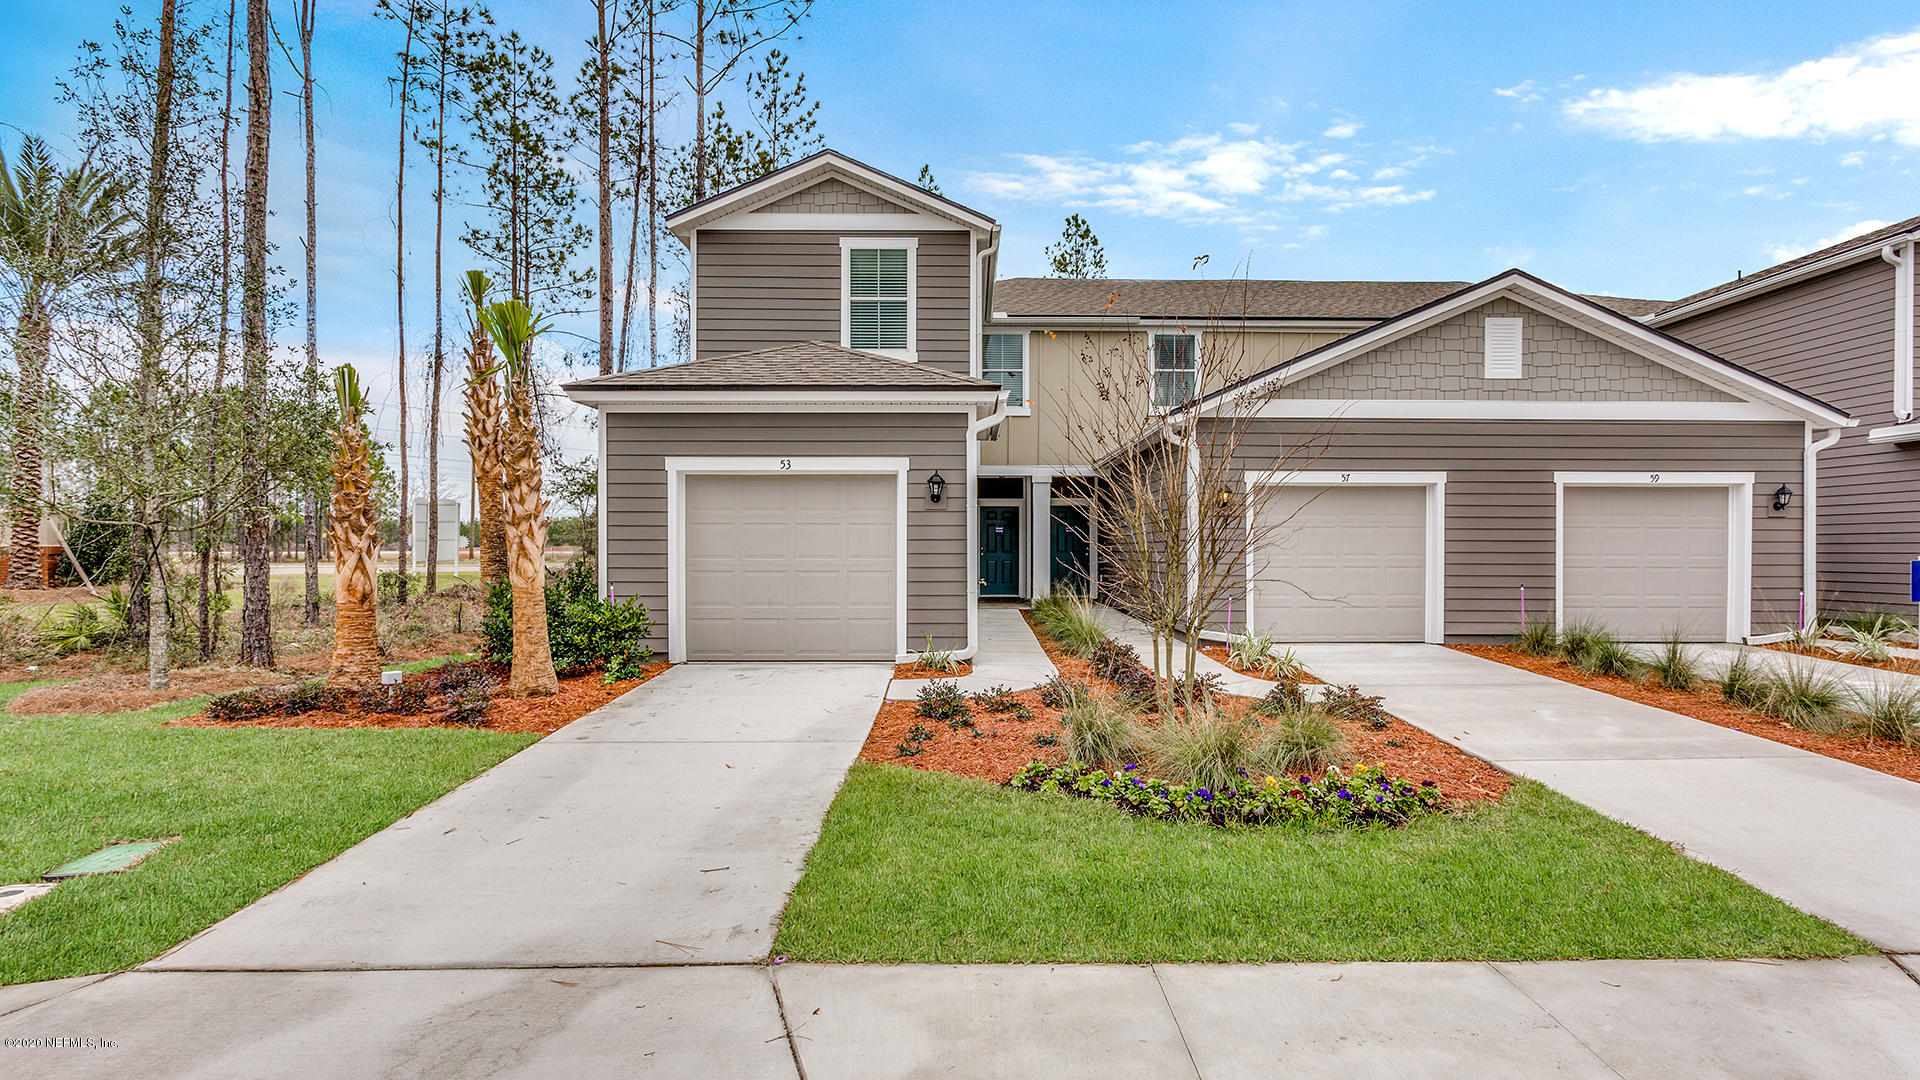 59 SCOTCH PEBBLE, ST JOHNS, FLORIDA 32259, 3 Bedrooms Bedrooms, ,2 BathroomsBathrooms,Residential,For sale,SCOTCH PEBBLE,1080997